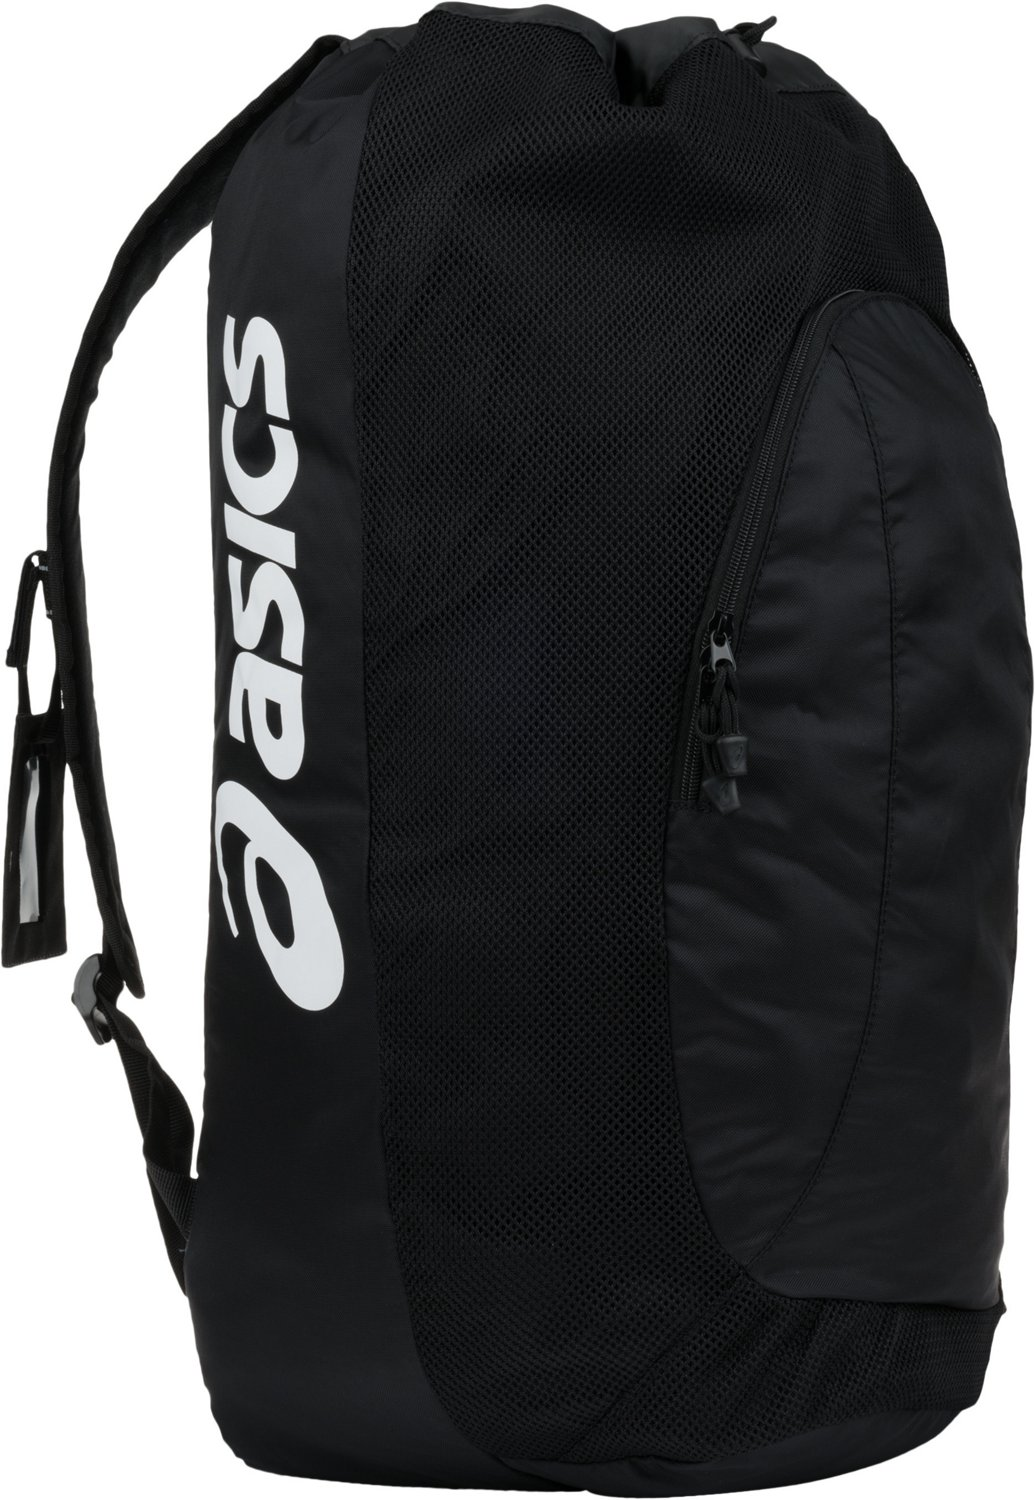 041ee4cfa1e0fe Display product reviews for ASICS® Gear Bag